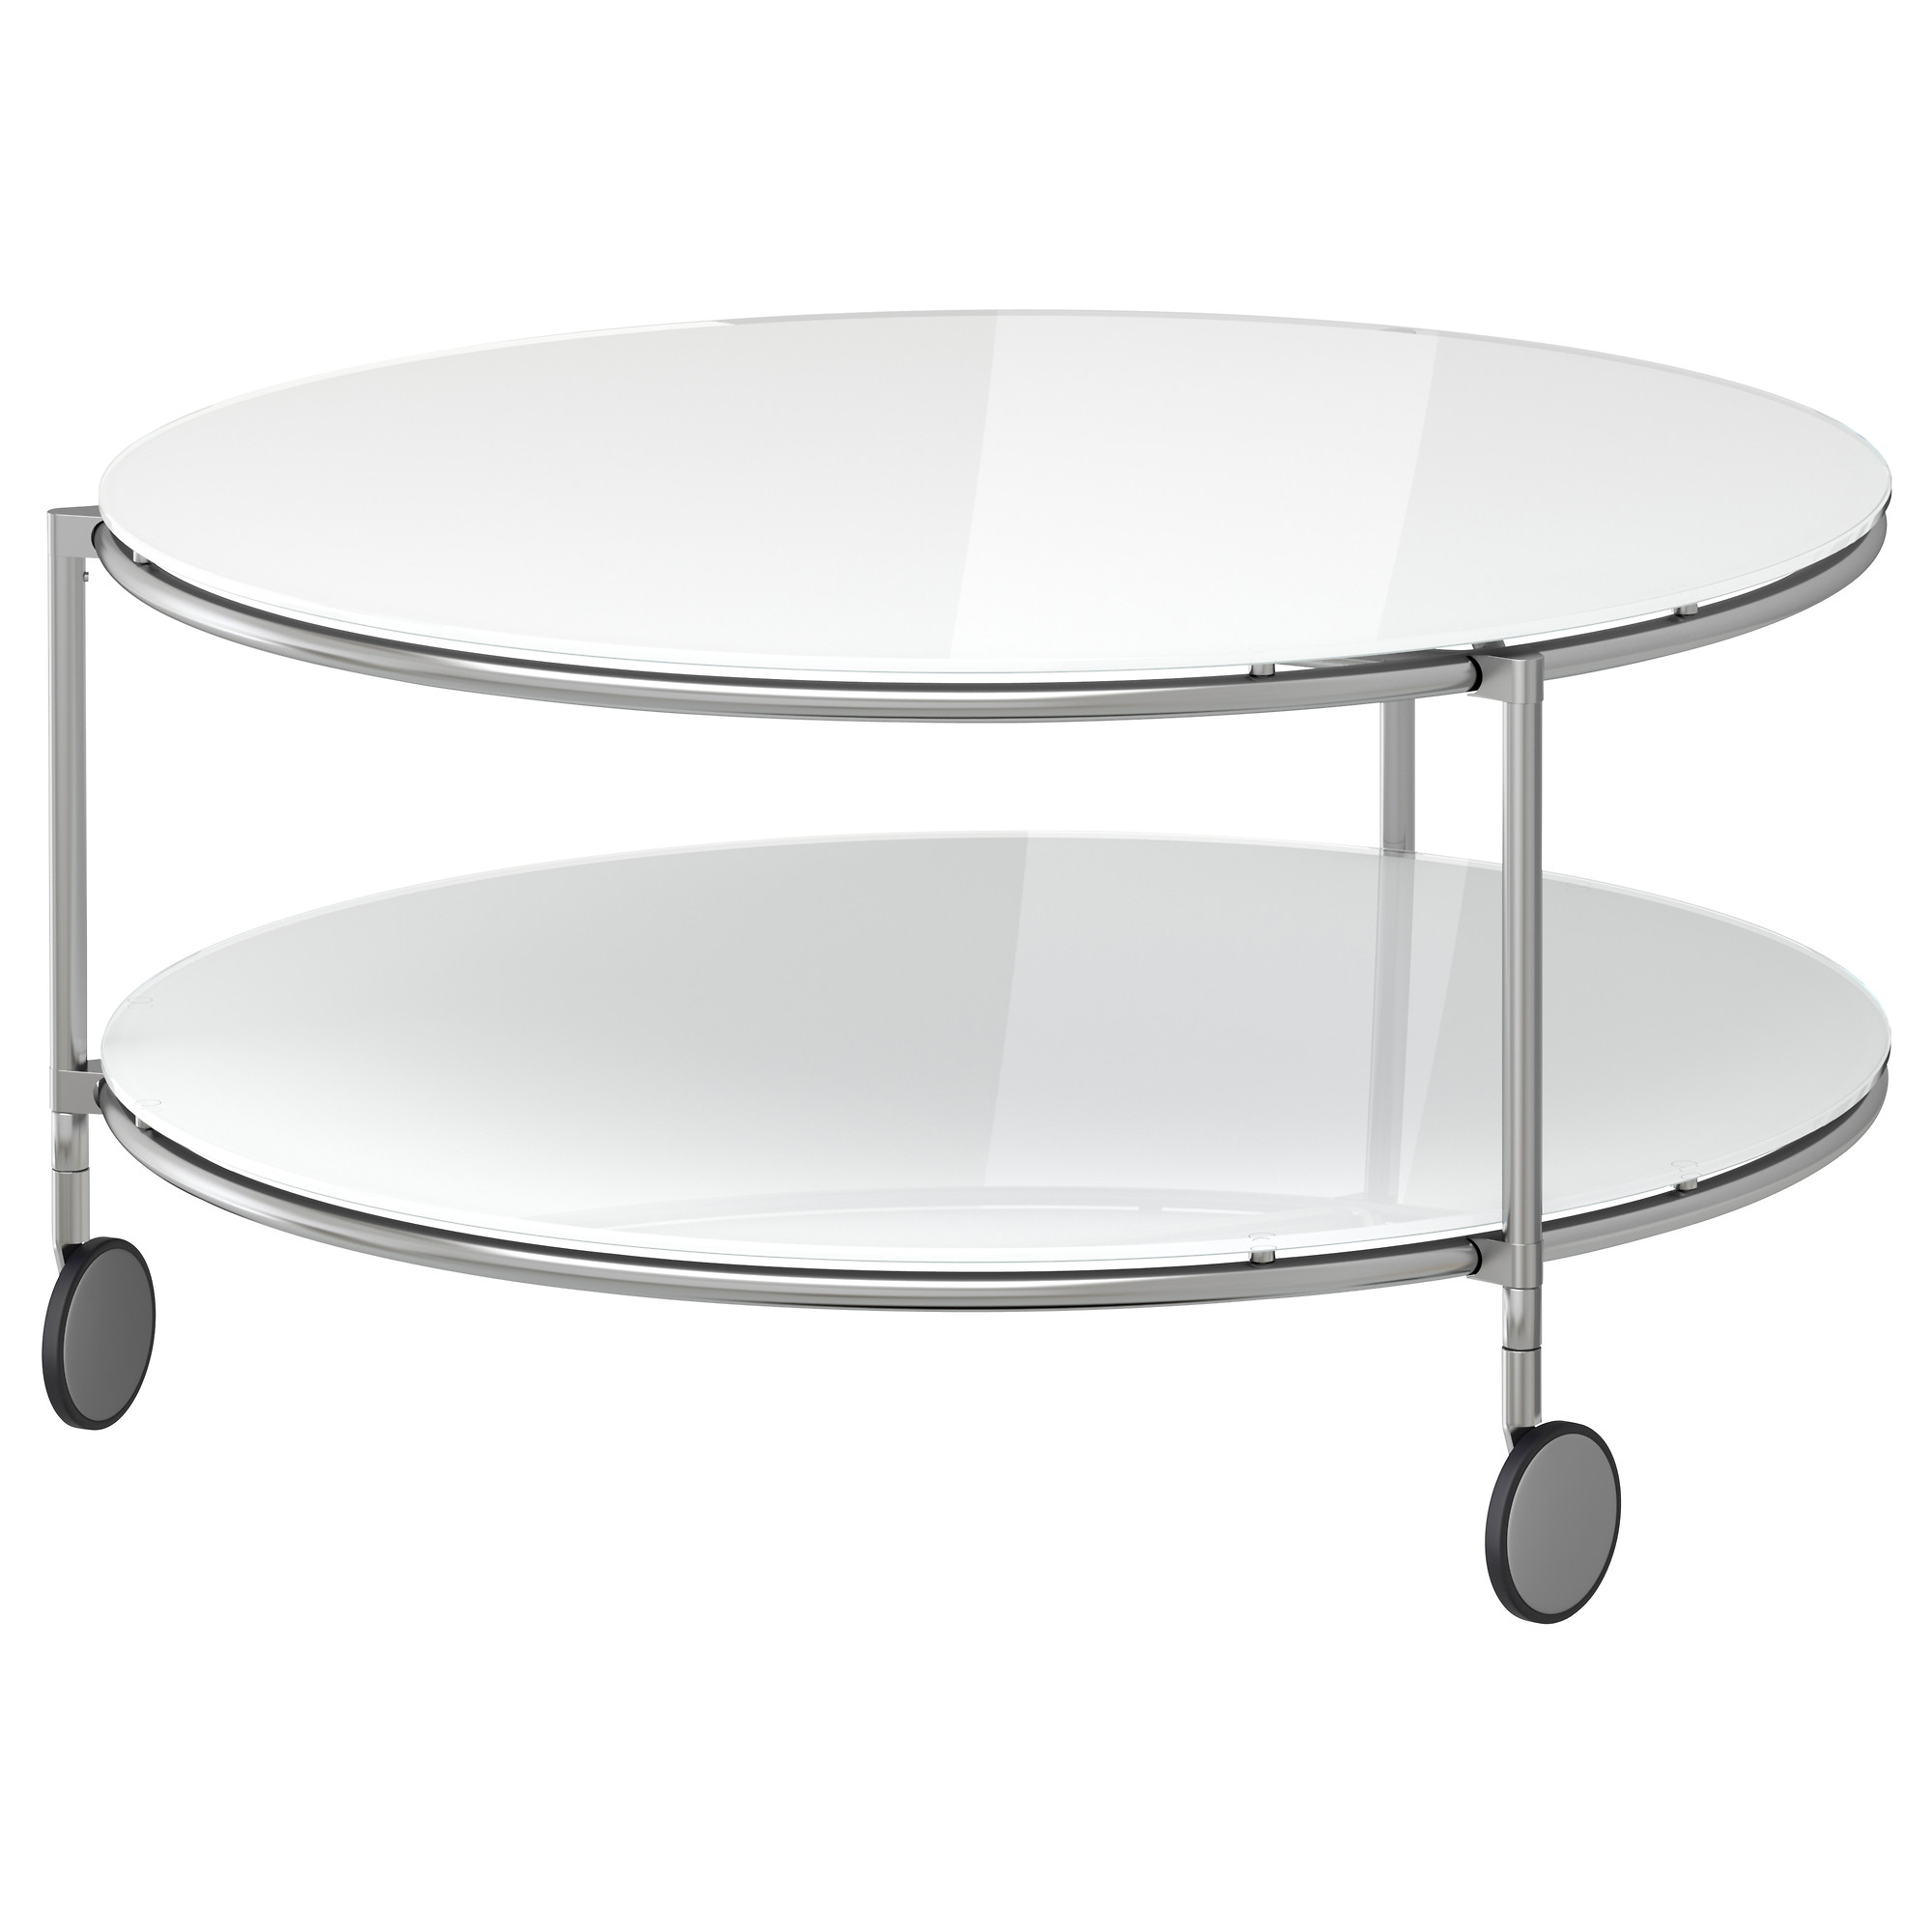 Table Basse Ronde Blanche Ikea Atwebster Fr Maison Et Mobilier